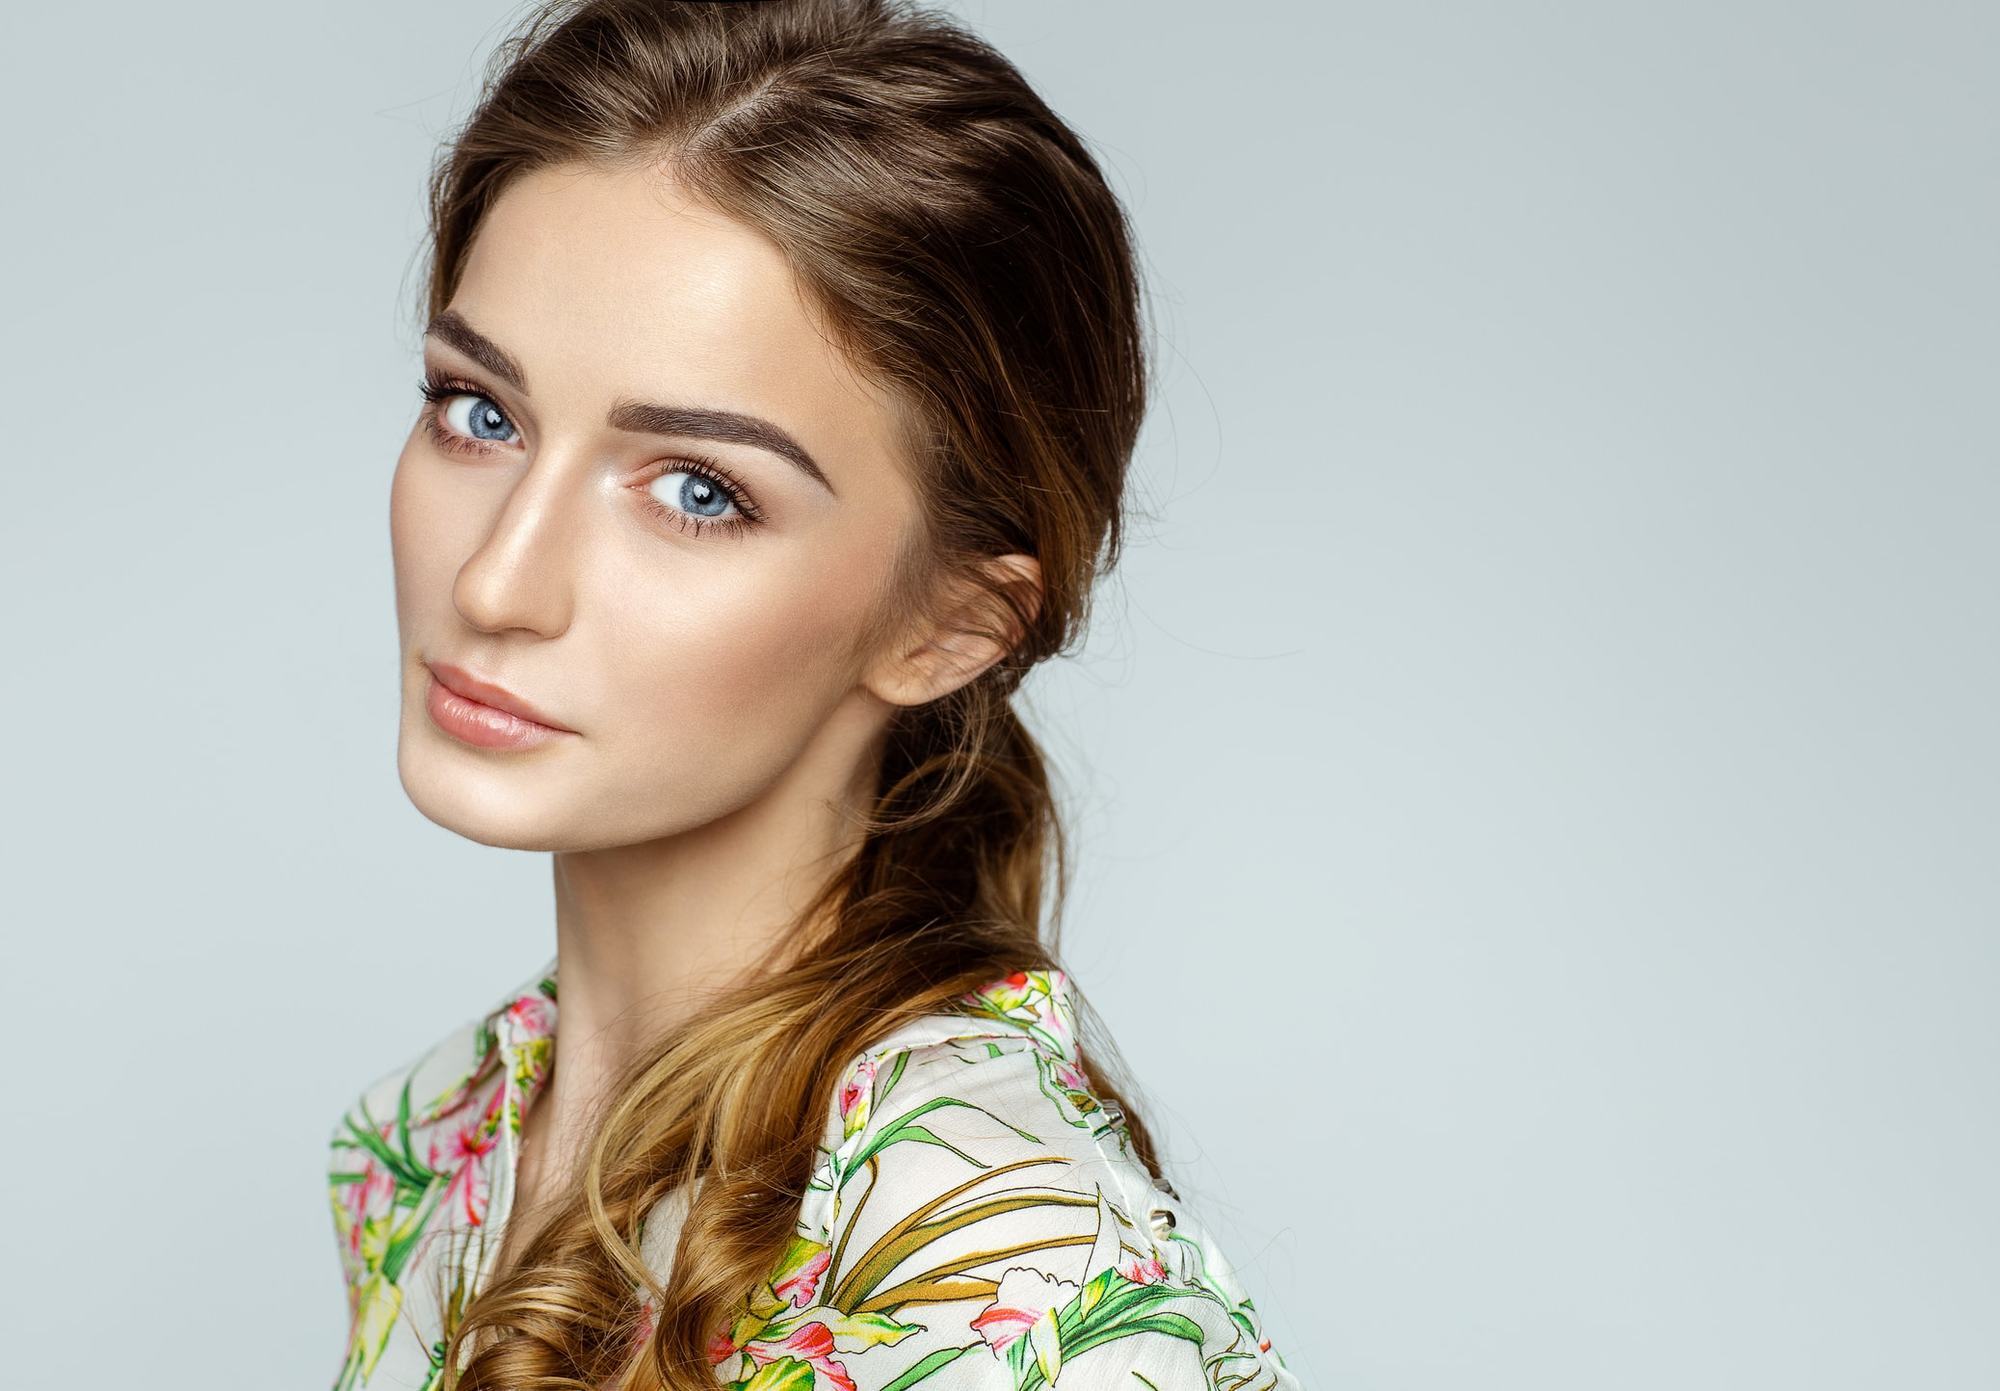 13 Flattering Hairstyles For Oblong Faces In 2019